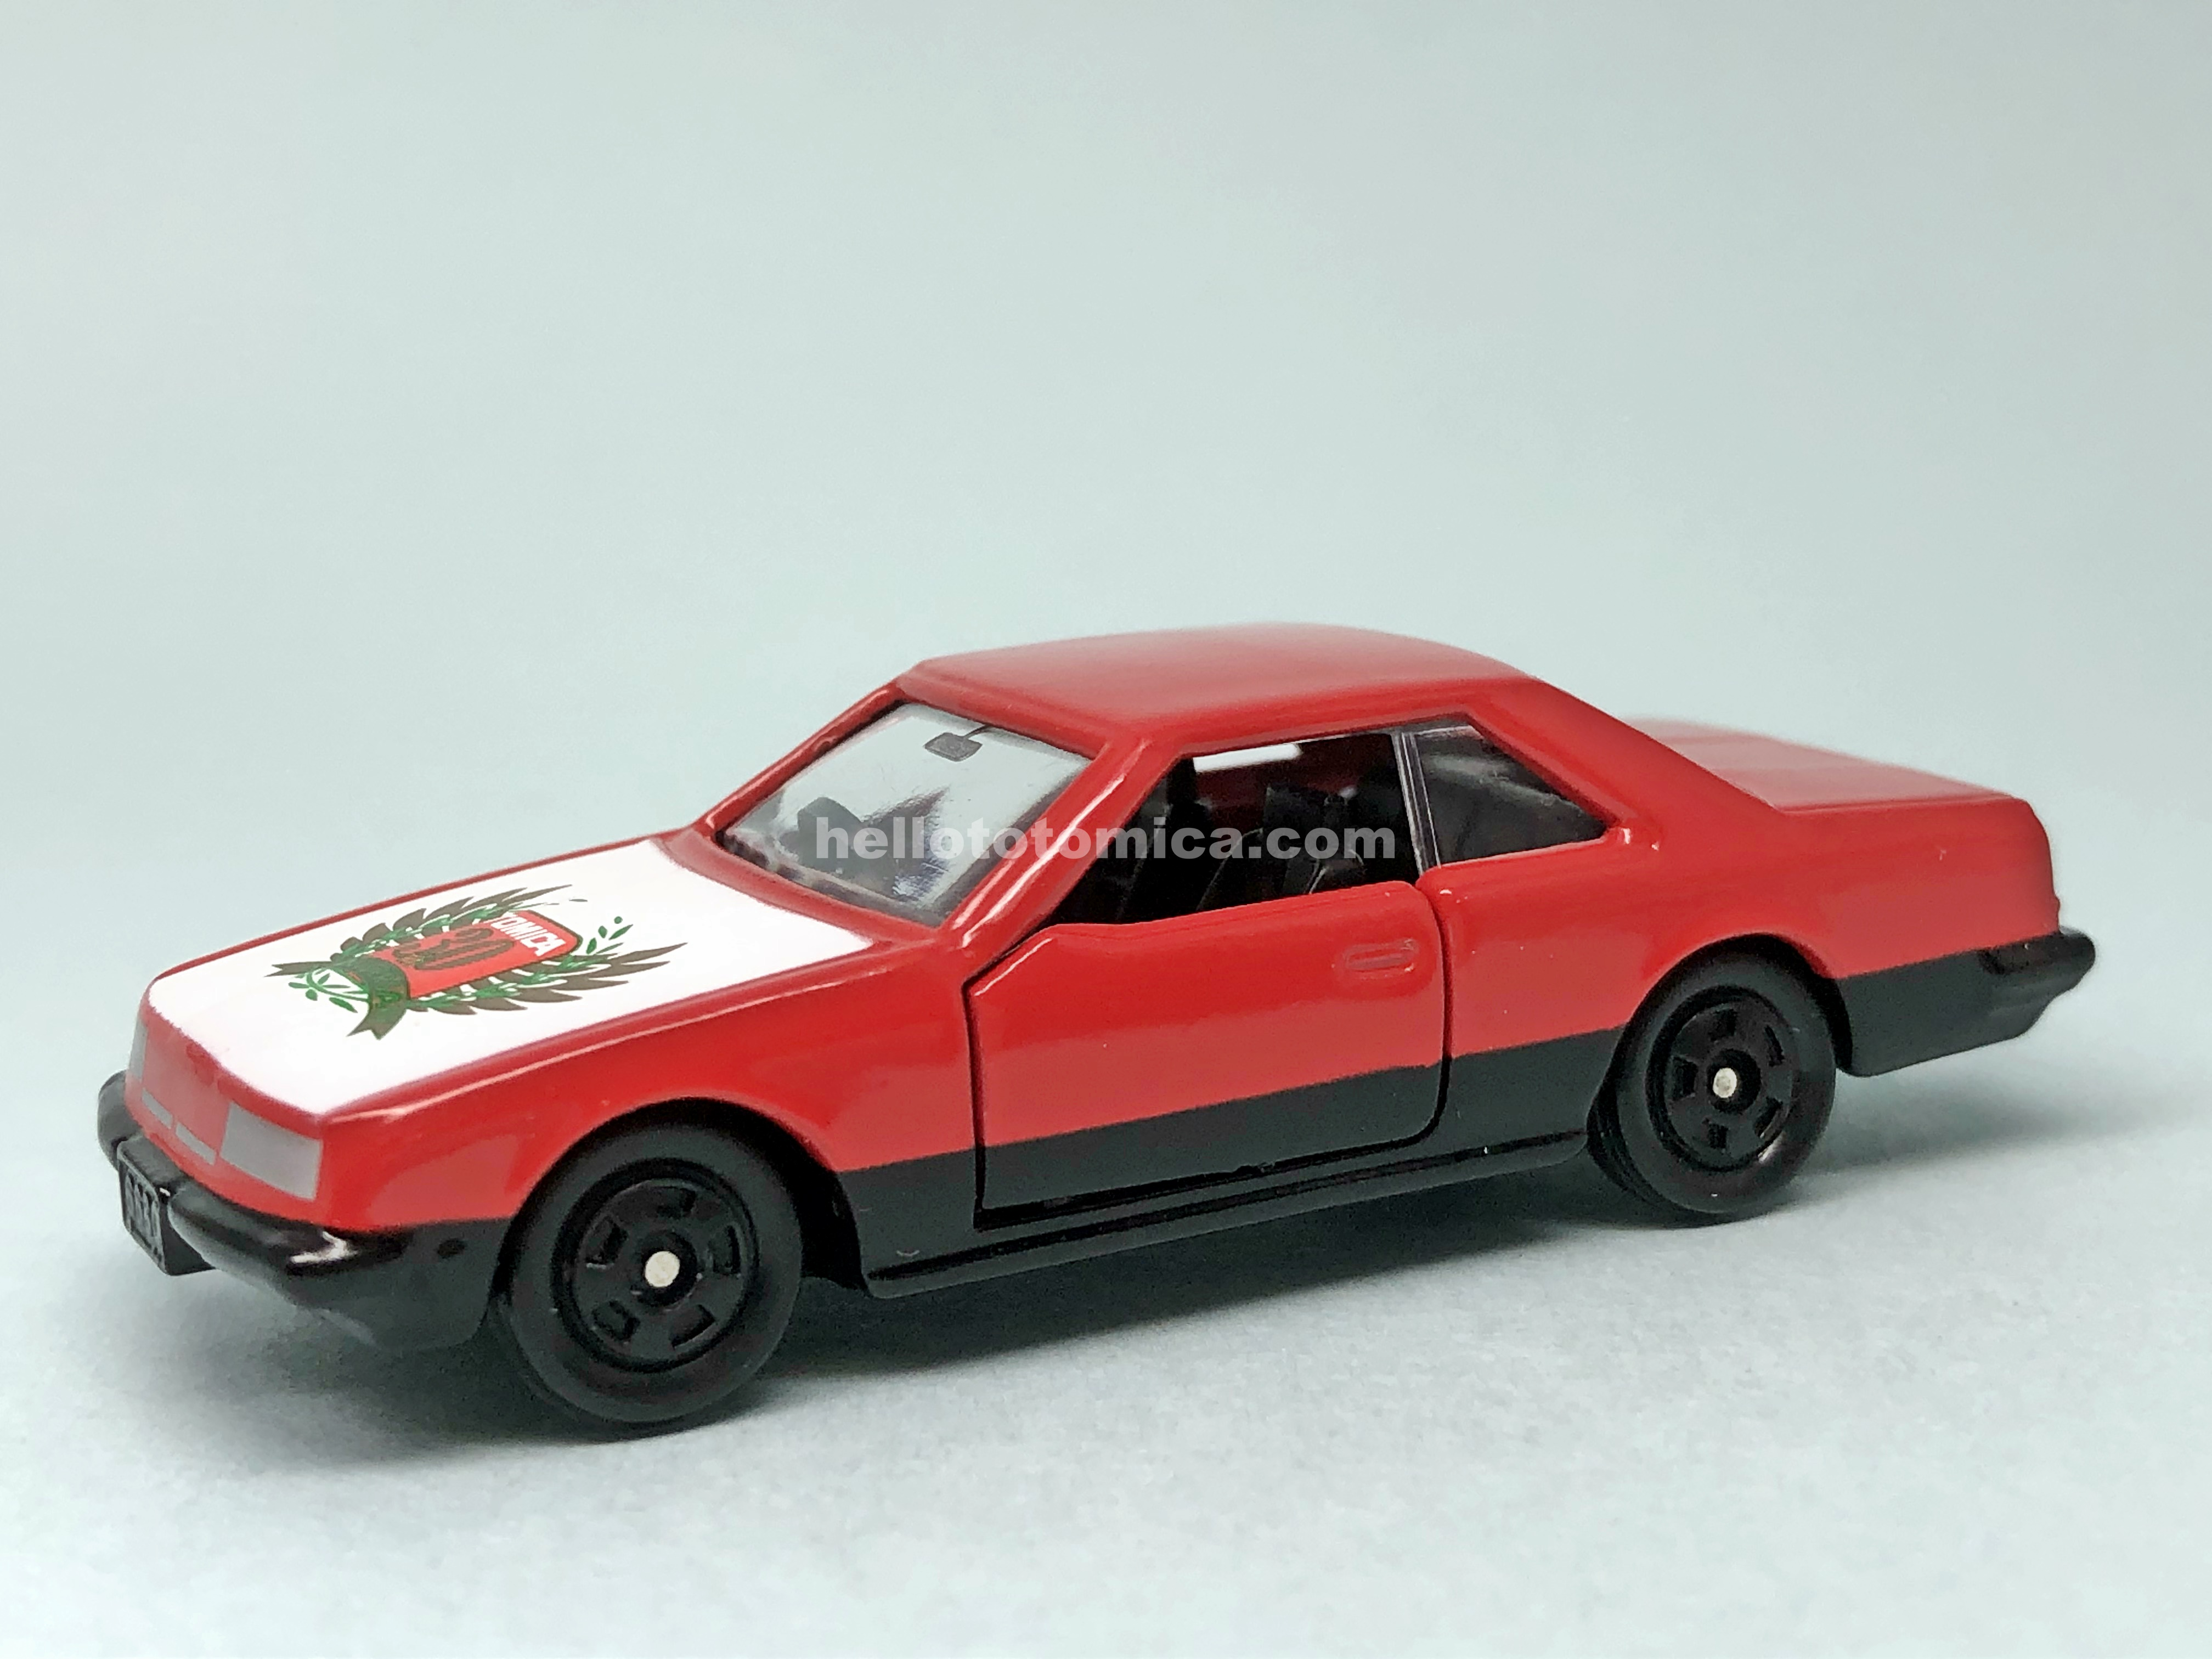 20-4 NISSAN SKYLINE 2000TURBO GT-ES